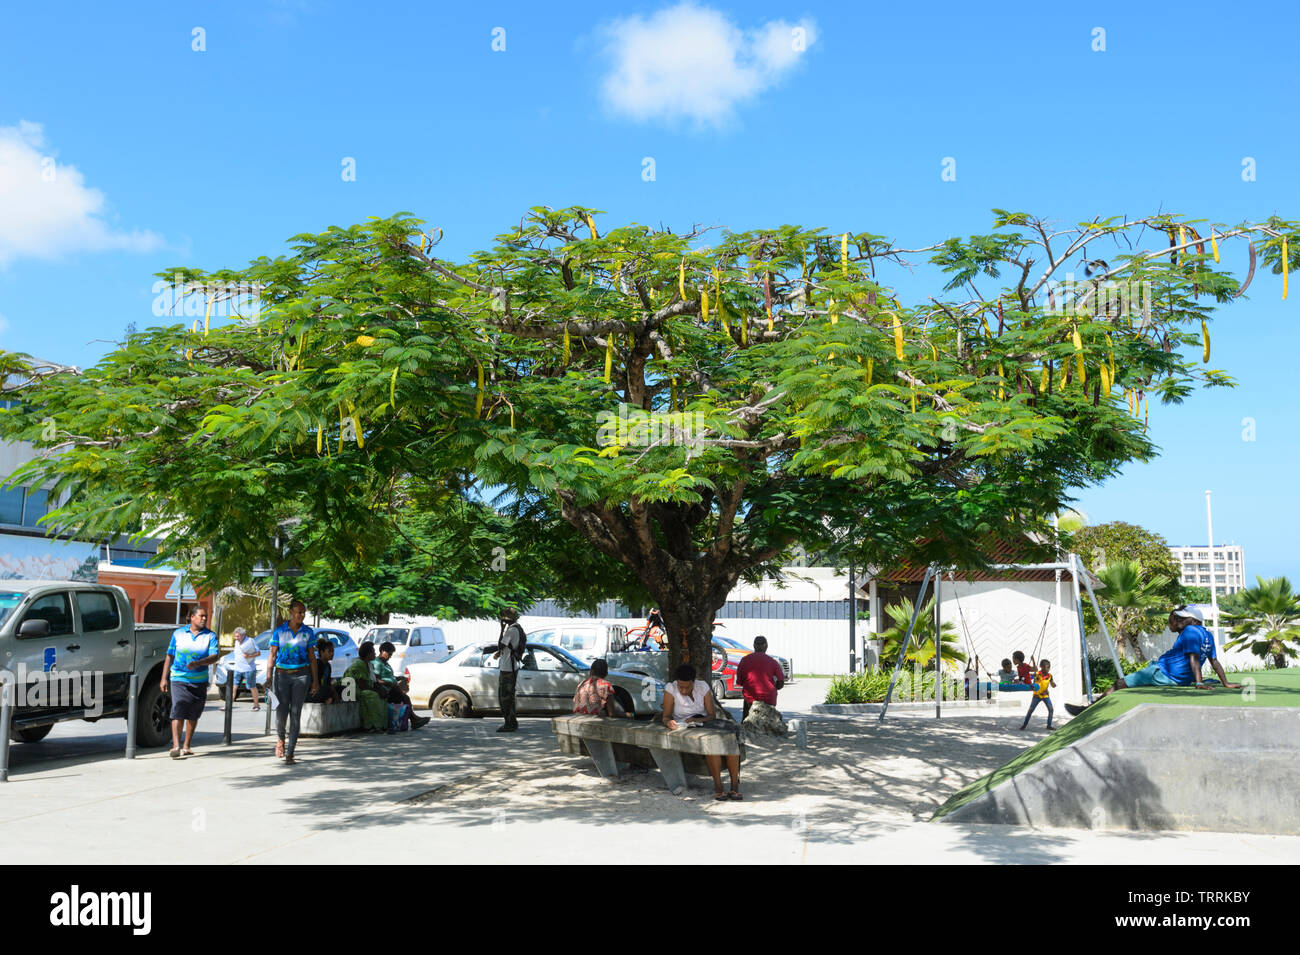 People relaxing underneath a Poinciana or Christmas tree in a public park, Port Vila, Vanuatu, Melanesia - Stock Image